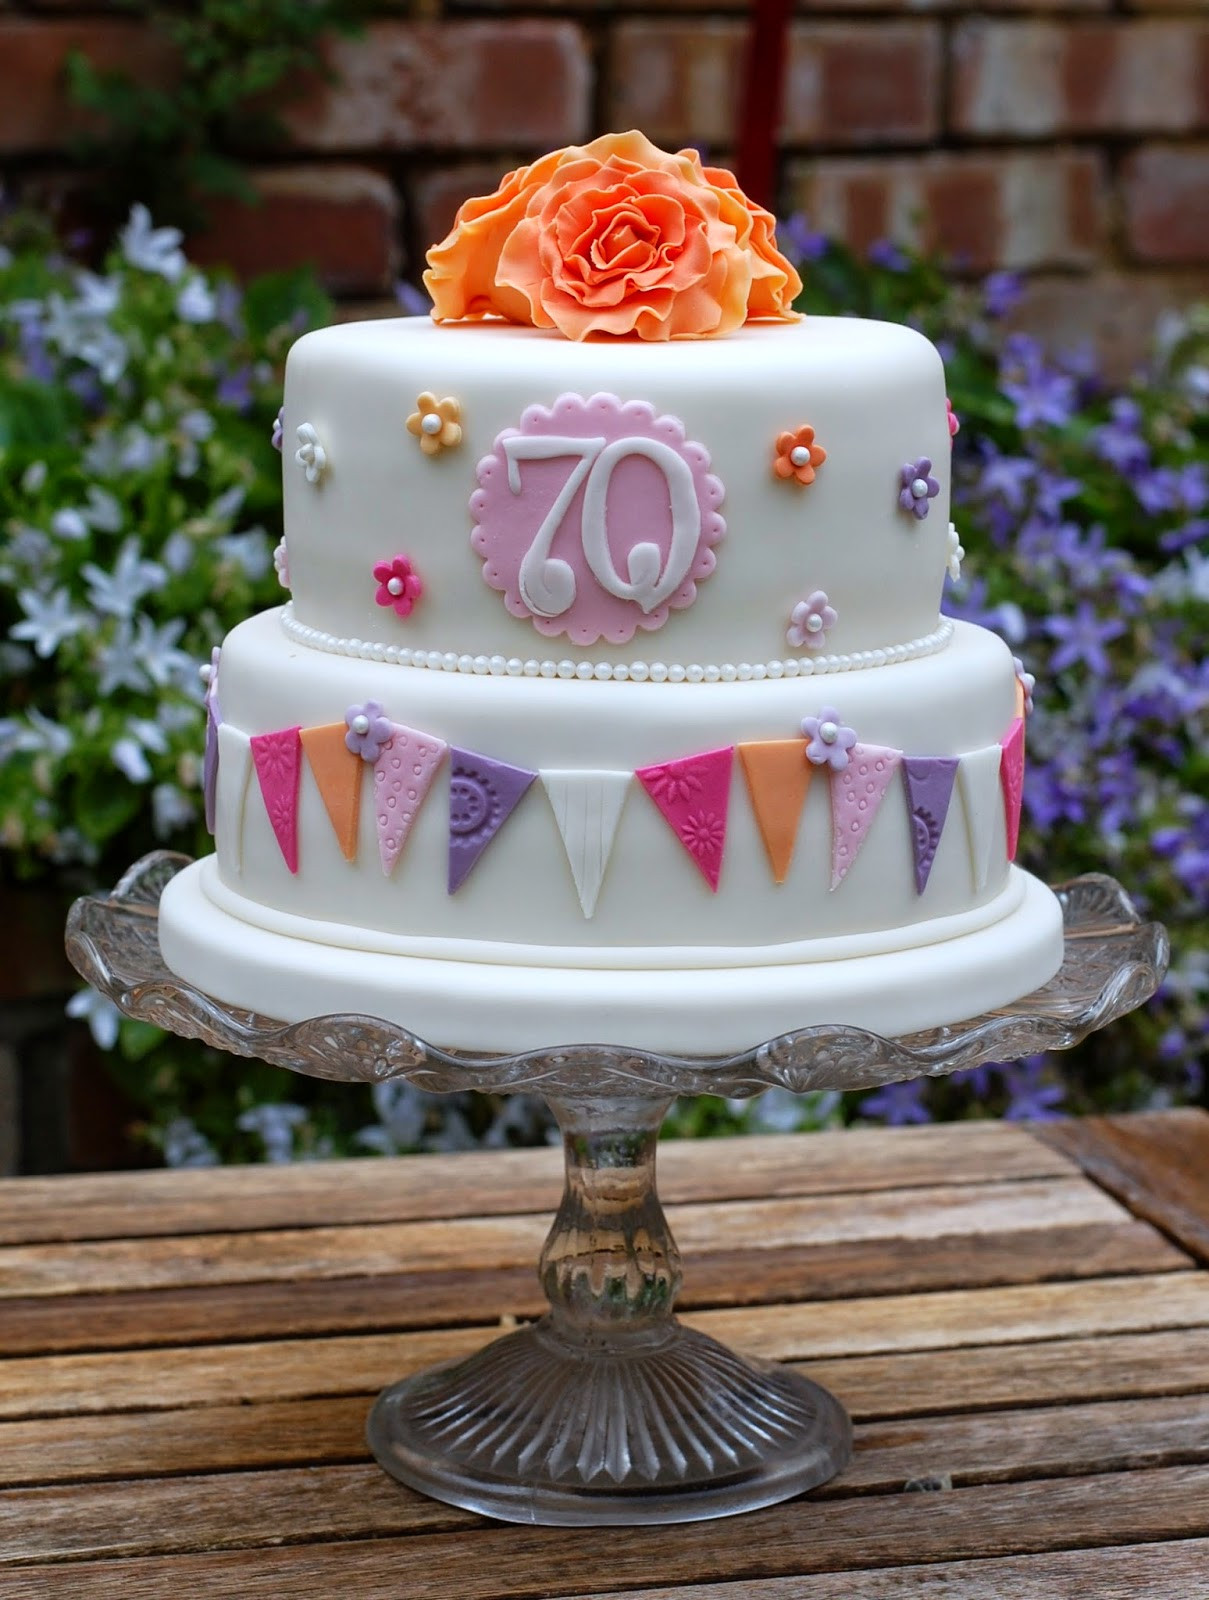 Best ideas about 70th Birthday Cake . Save or Pin Vanilla Frost Pretty 70th Birthday Cakes Now.